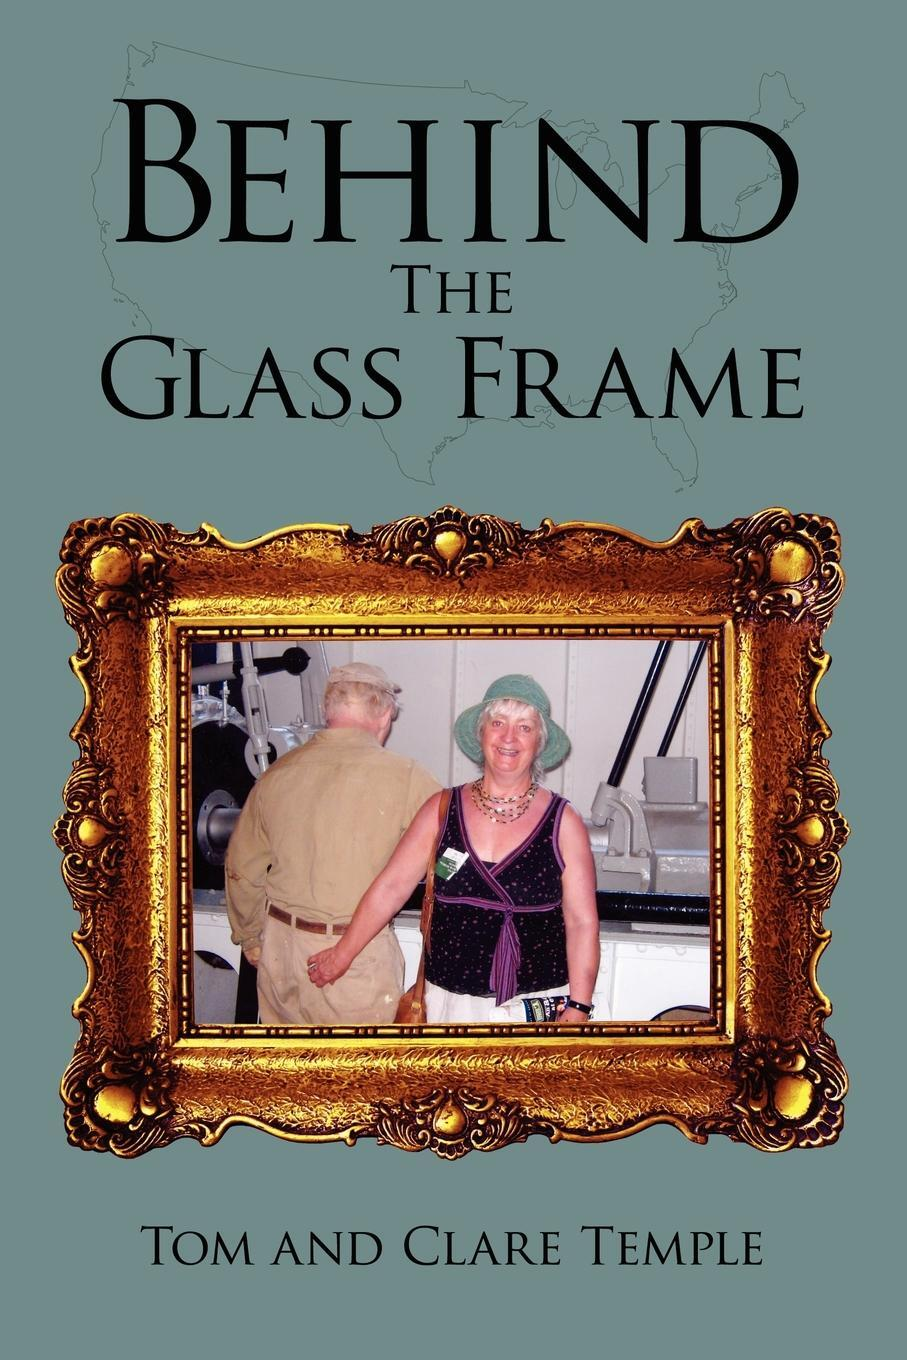 Behind the Glass Frame